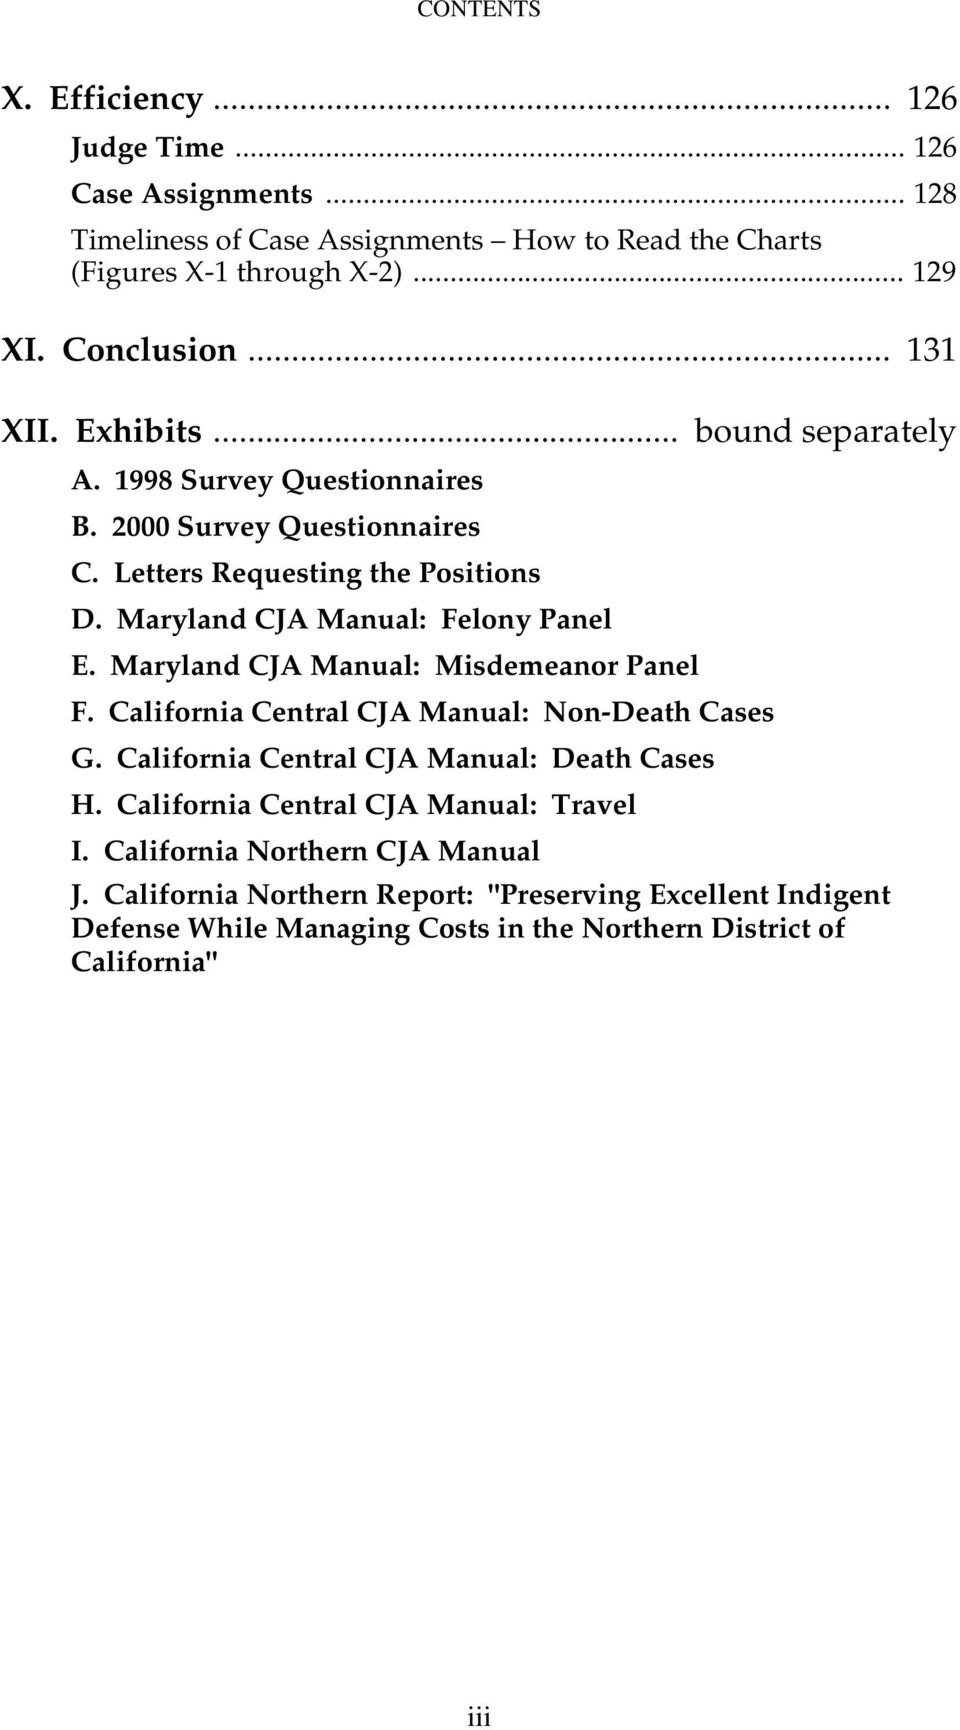 Maryland CJA Manual: Felony Panel E. Maryland CJA Manual: Misdemeanor Panel F. California Central CJA Manual: Non-Death Cases G. California Central CJA Manual: Death Cases H.